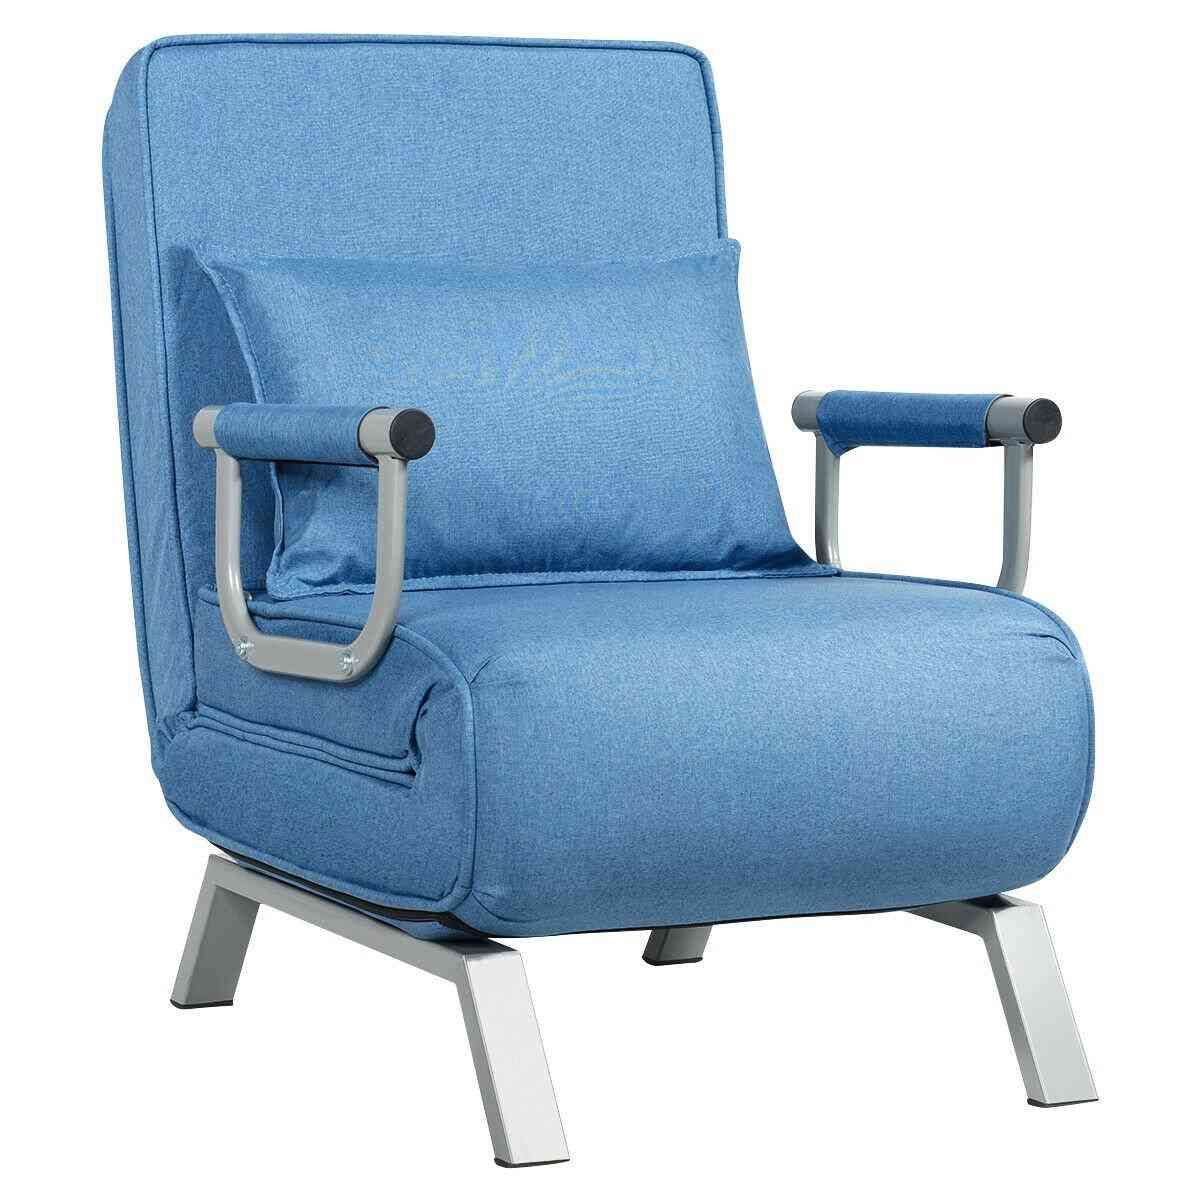 Folding And Convertible Sleeper Armchair-lounge Couch